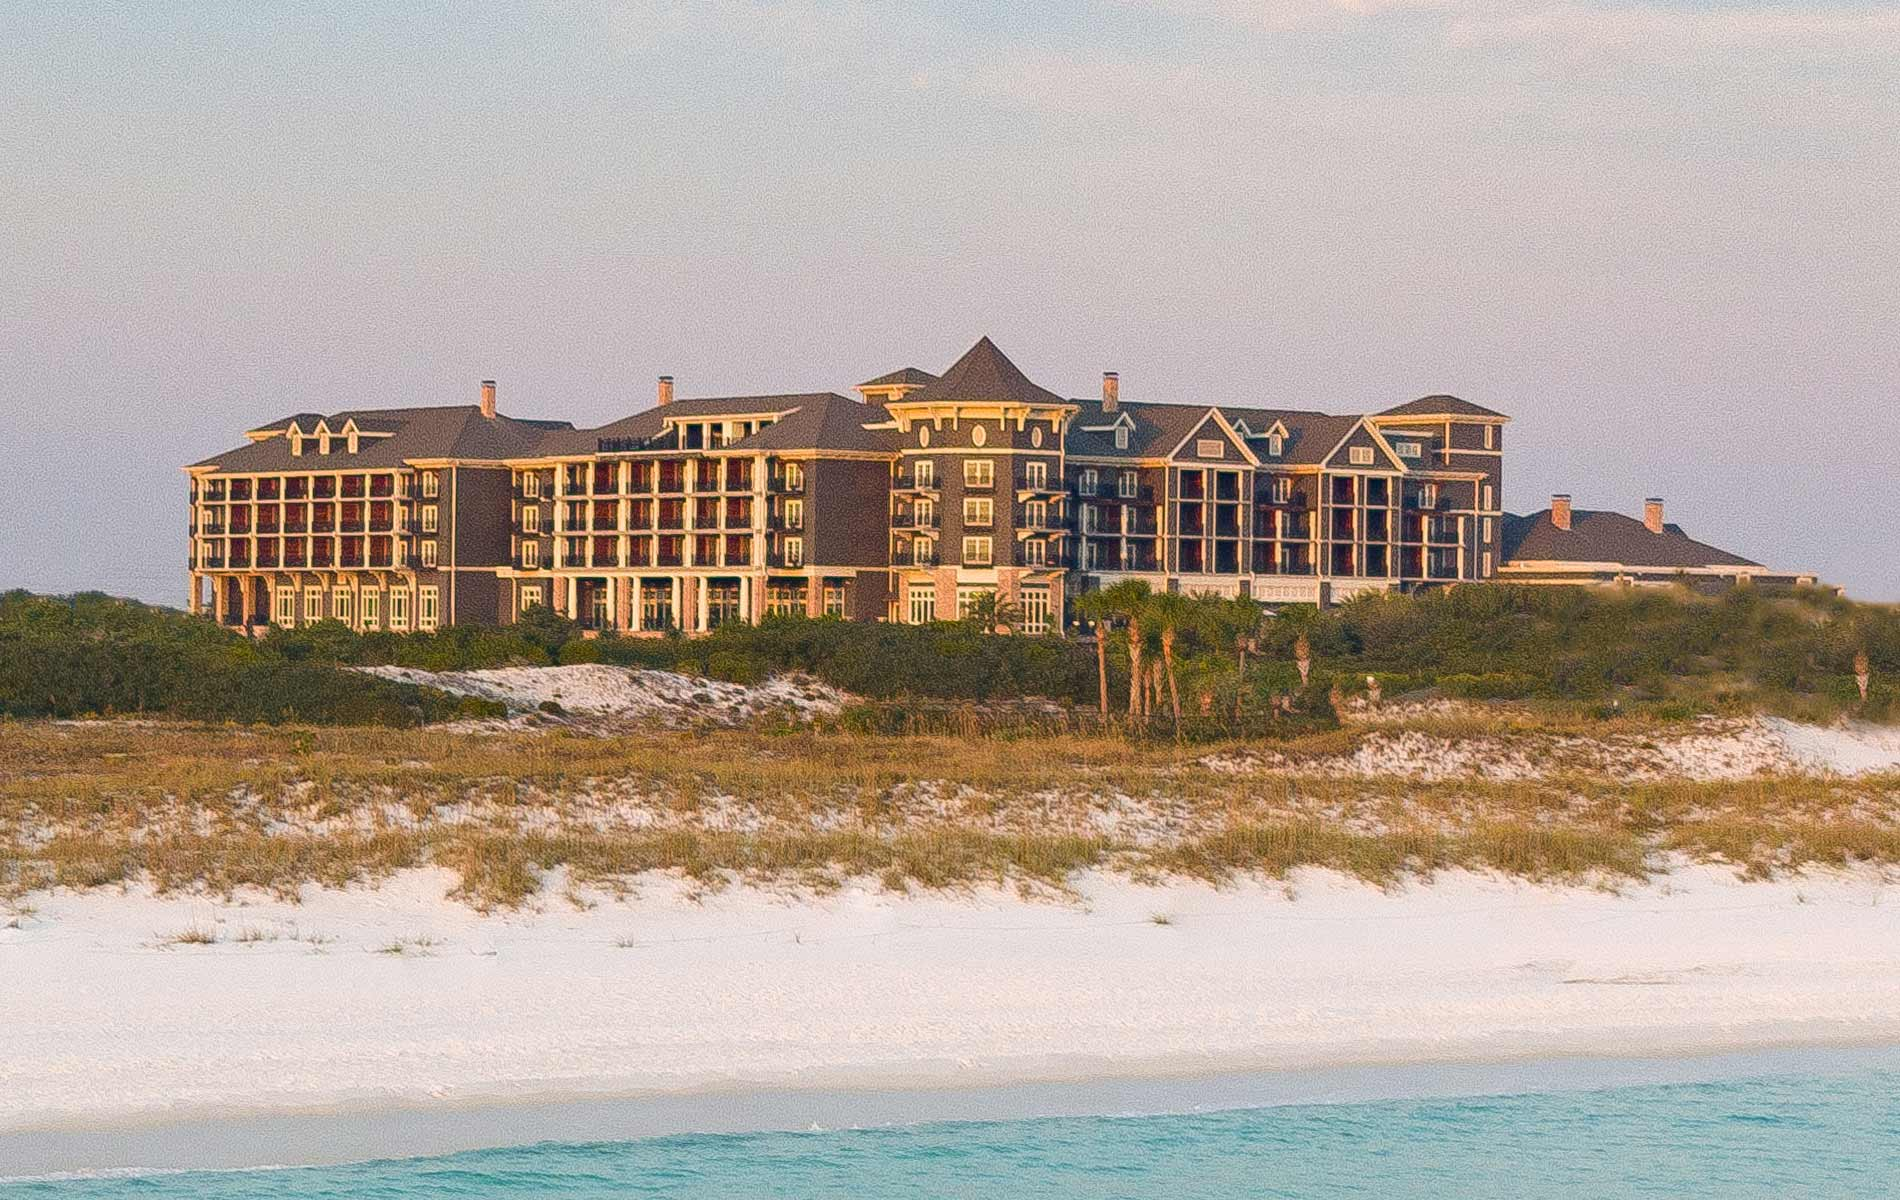 Henderson Beach Resort located in Destin, Florida